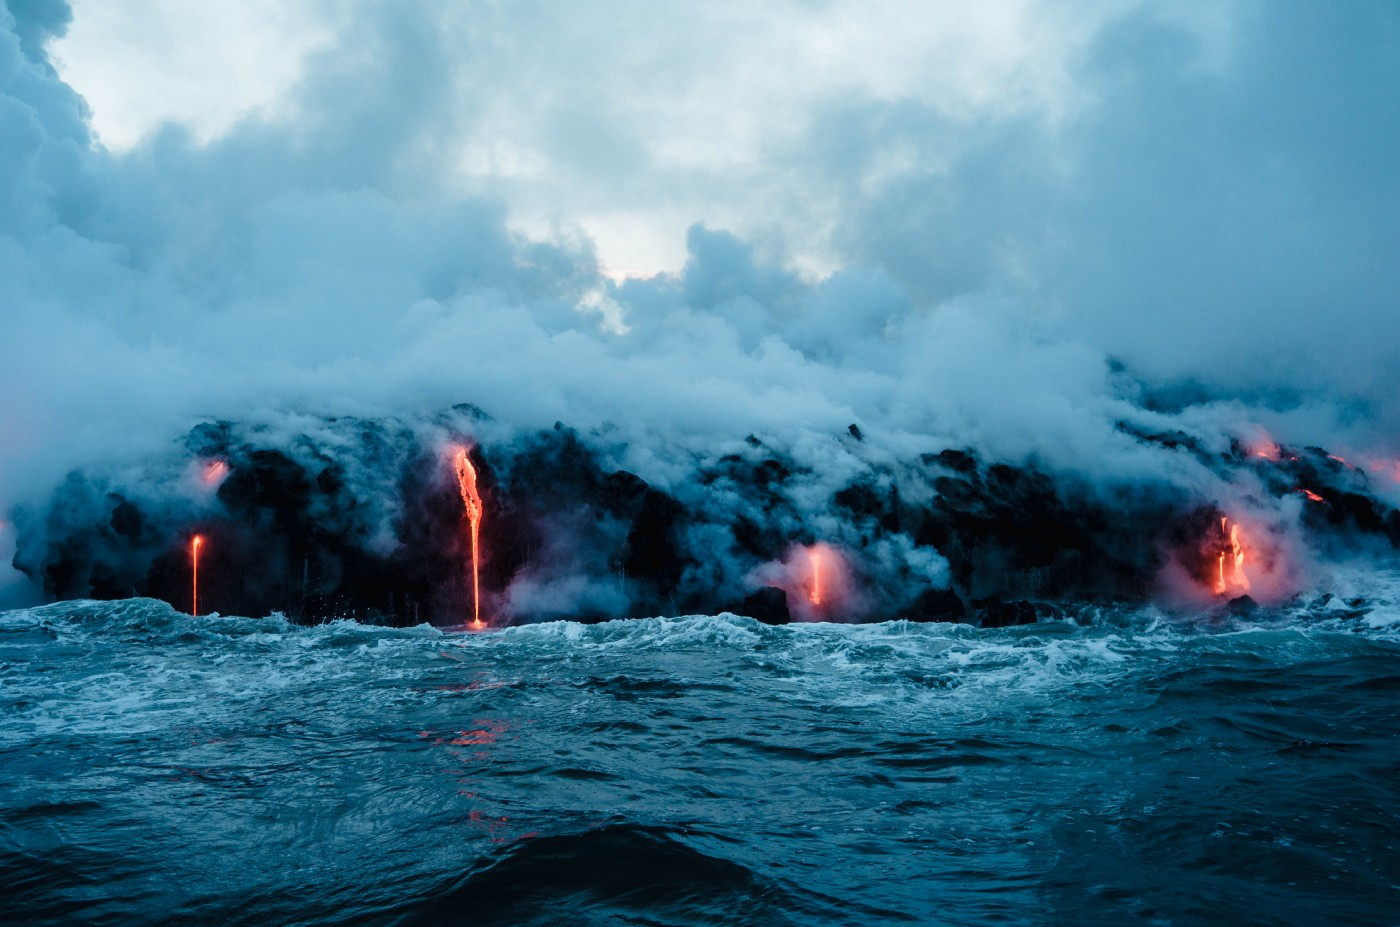 Image of hot lava pouring into the ocean on a stormy day